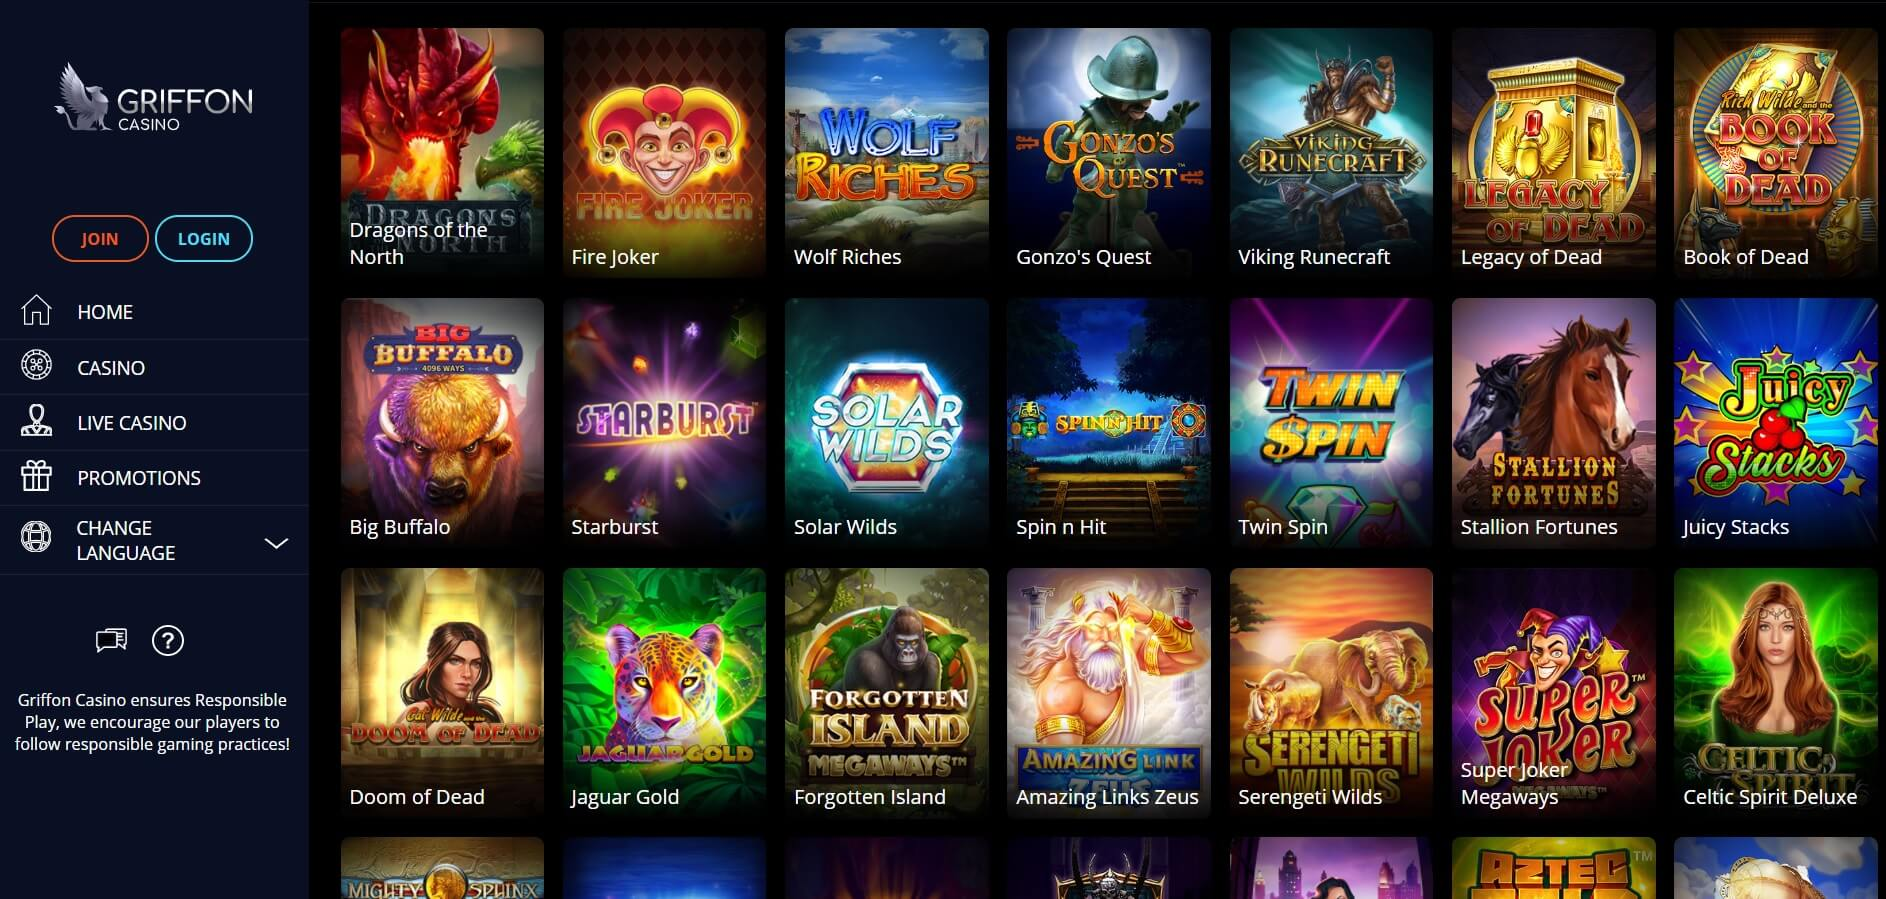 griffon casino games